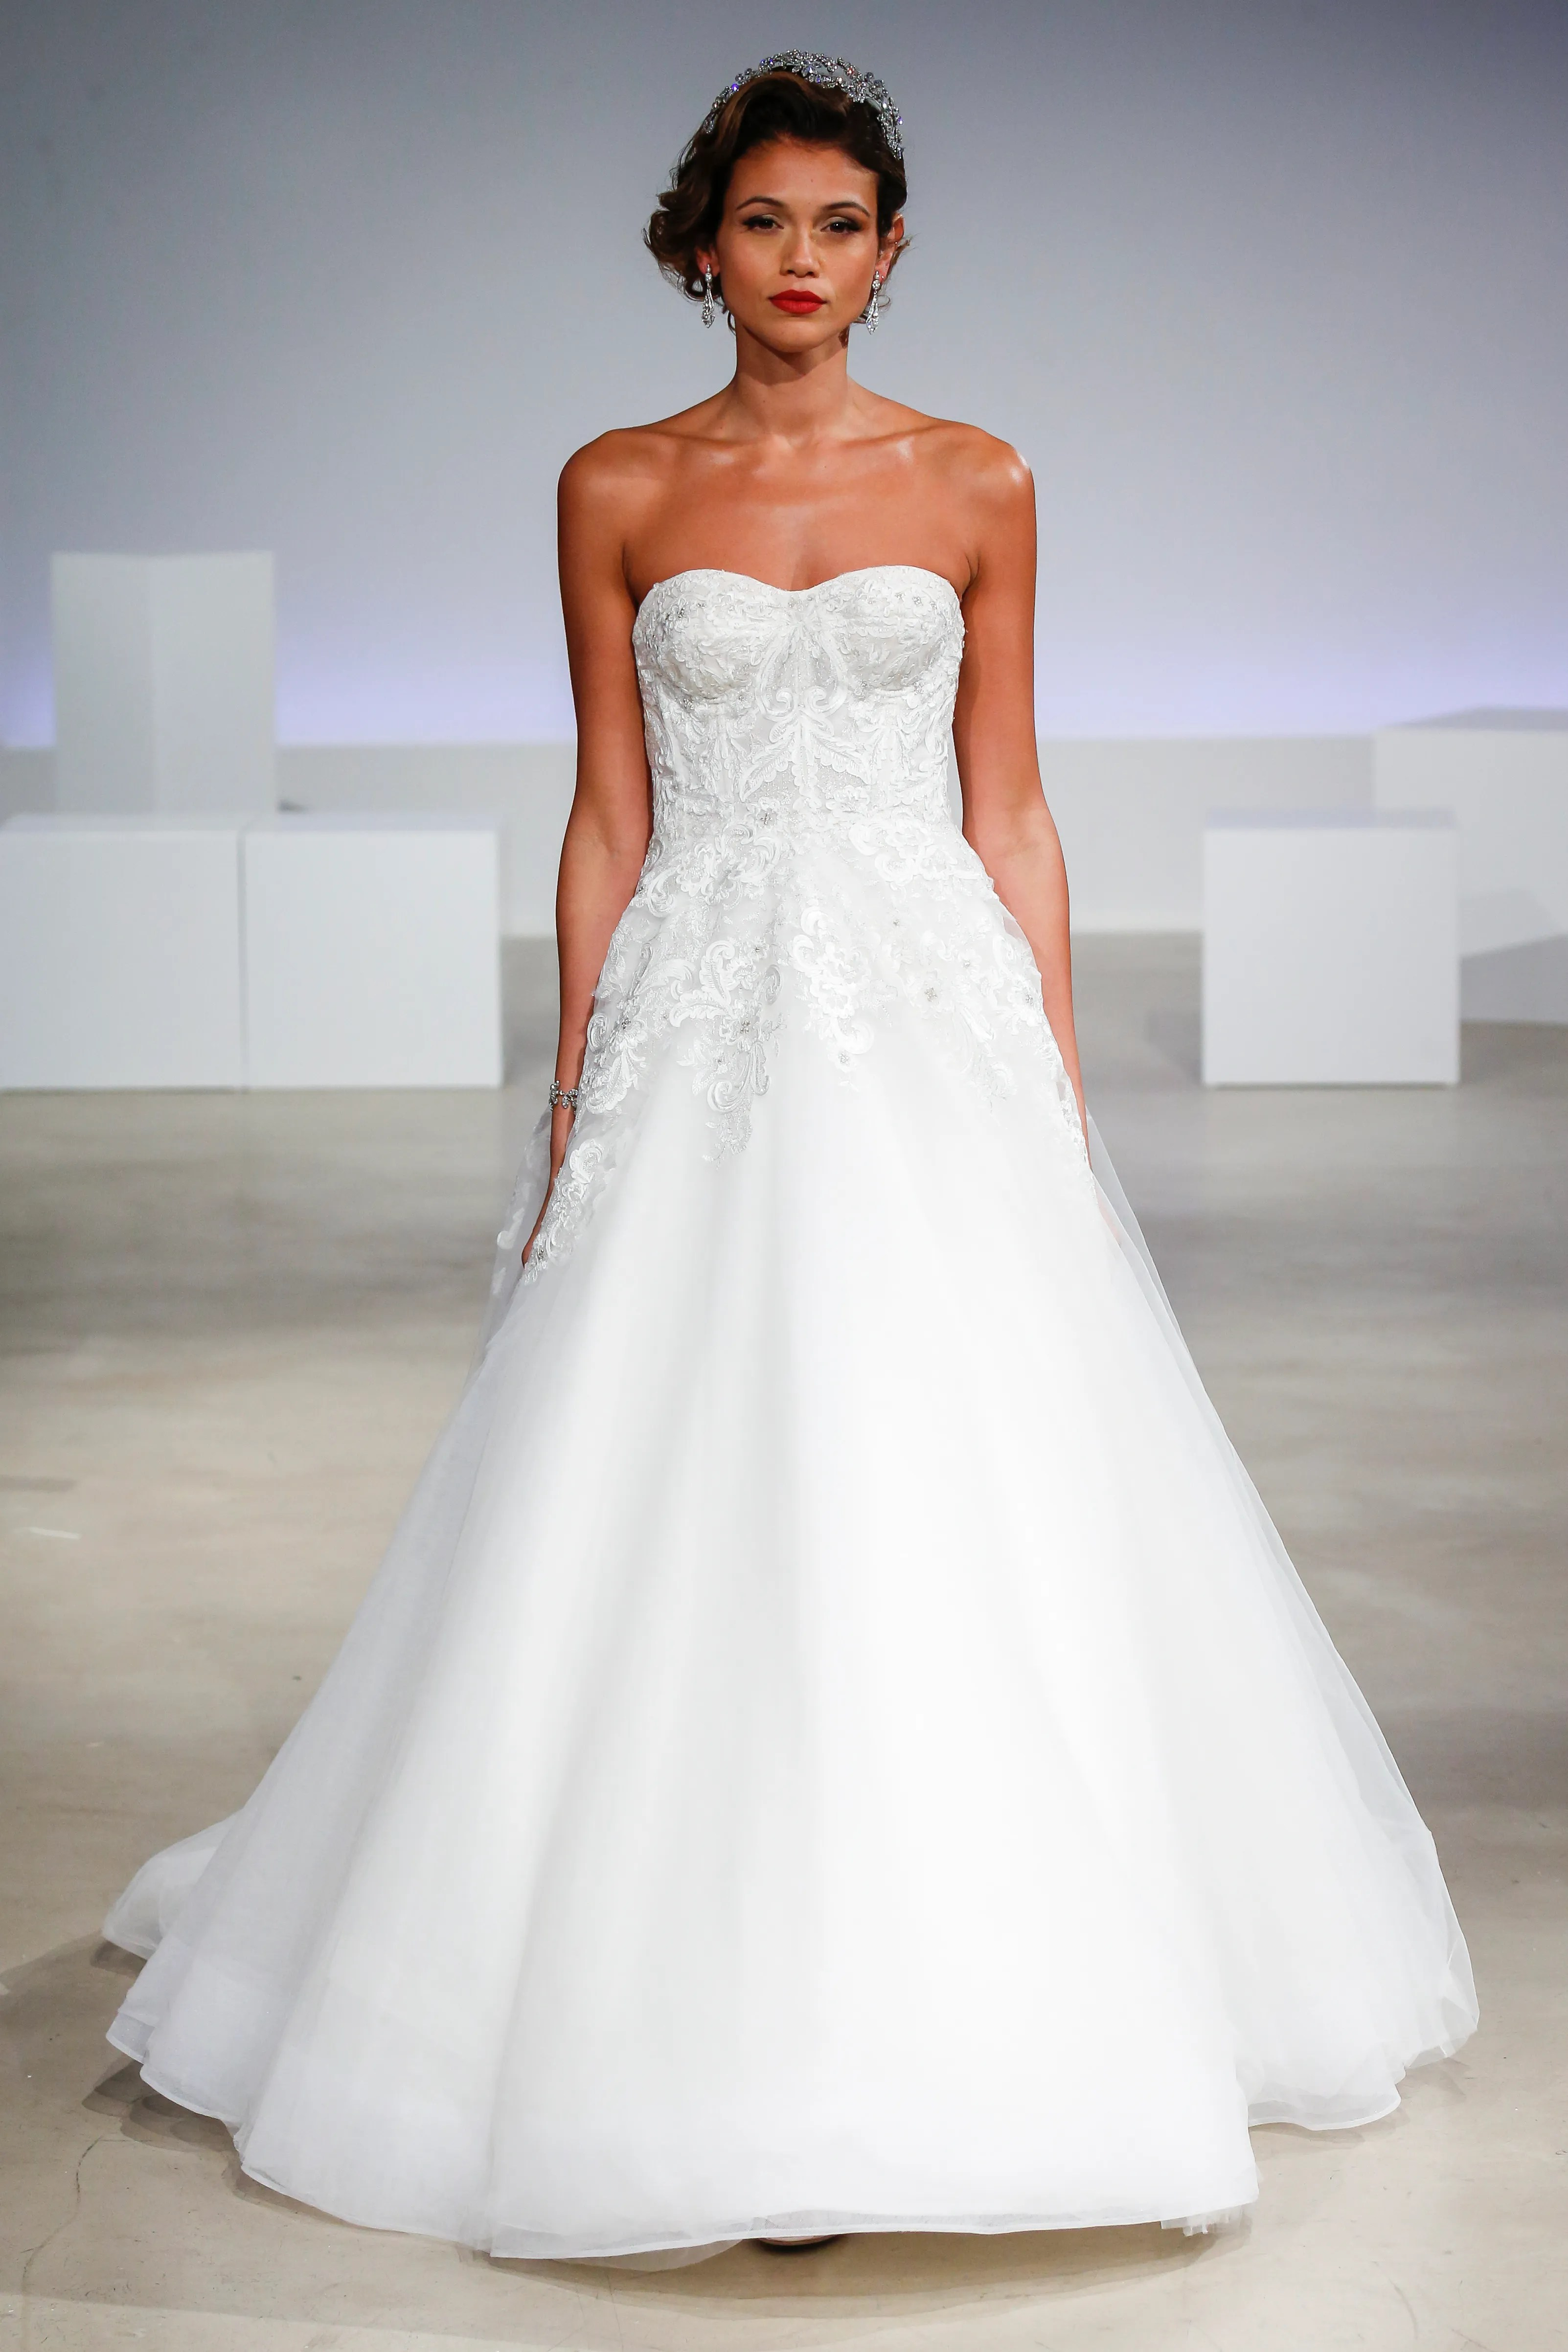 49 Gorgeous Wedding Dresses Youve Never Seen Before